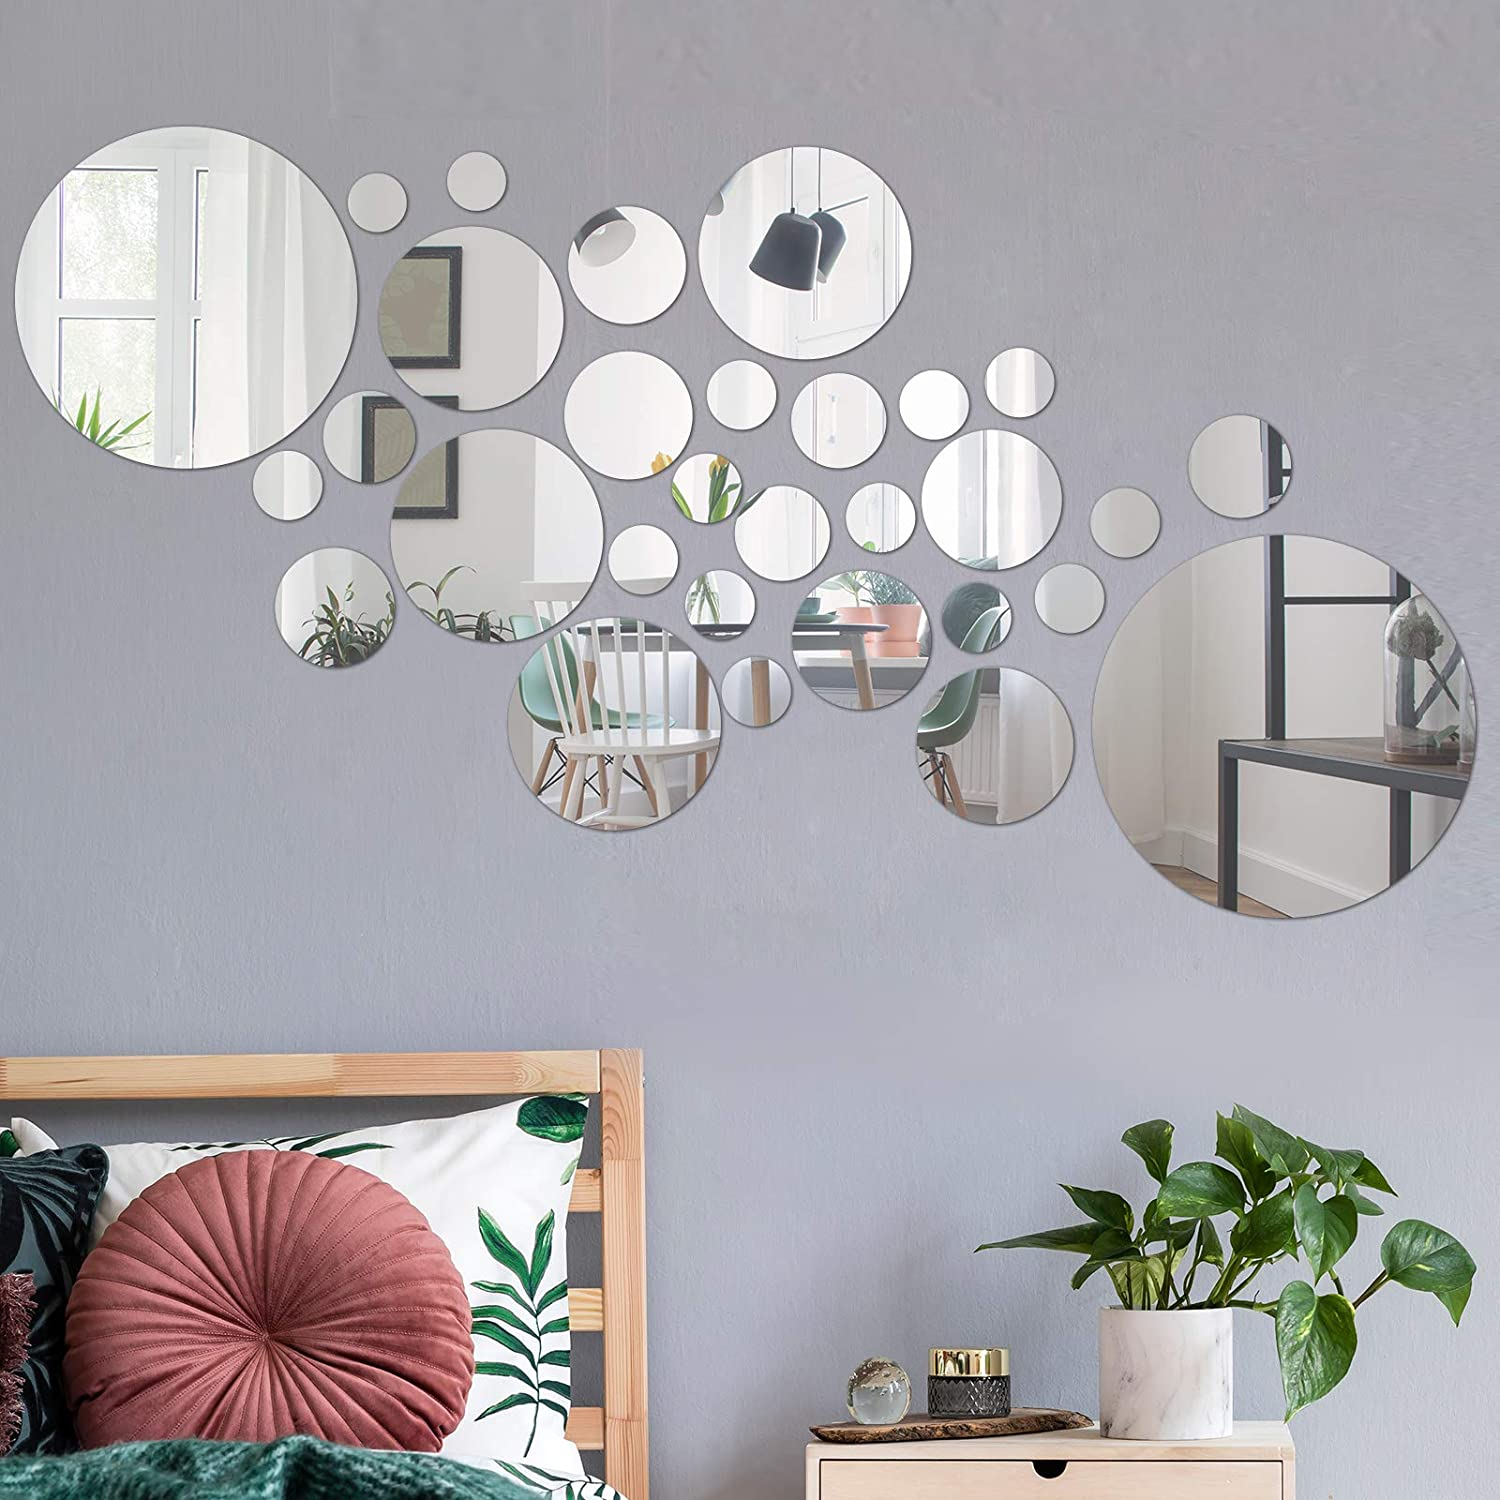 COCIVIVRE Mirror Wall Sticker, Circle DIY Round Wall Stickers for Wall Decoration 30pcs, Reflective Removable Adhesive Acrylic Wall Sticker Decal for Room Bedroom Tiles Aesthetic Wall Decor, Silver